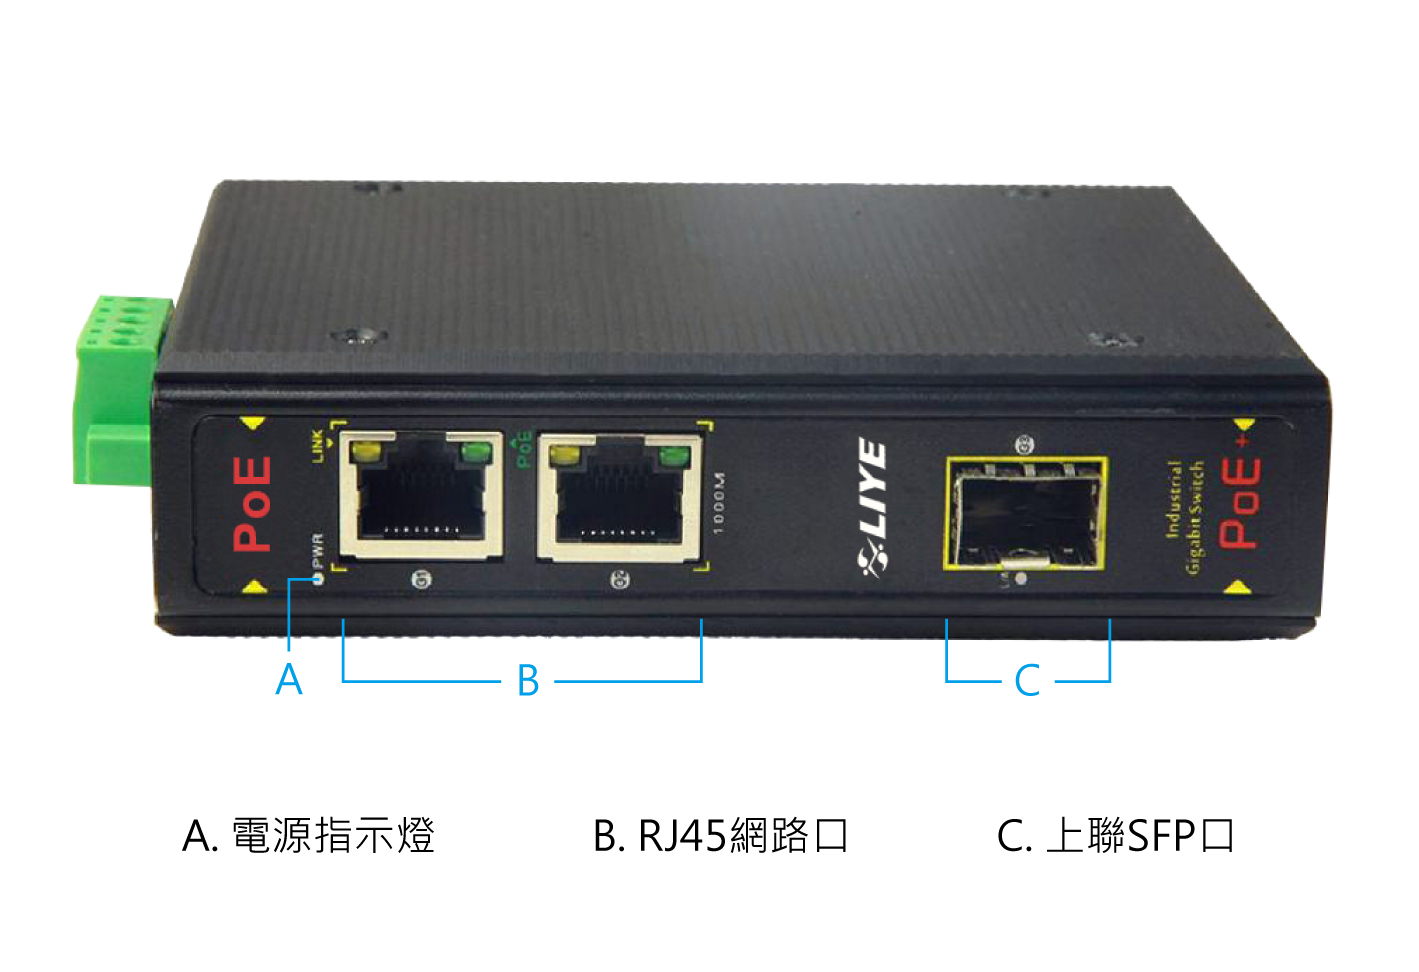 秝業 LY33032PF-IPS 3埠千兆POE供電工業交換機